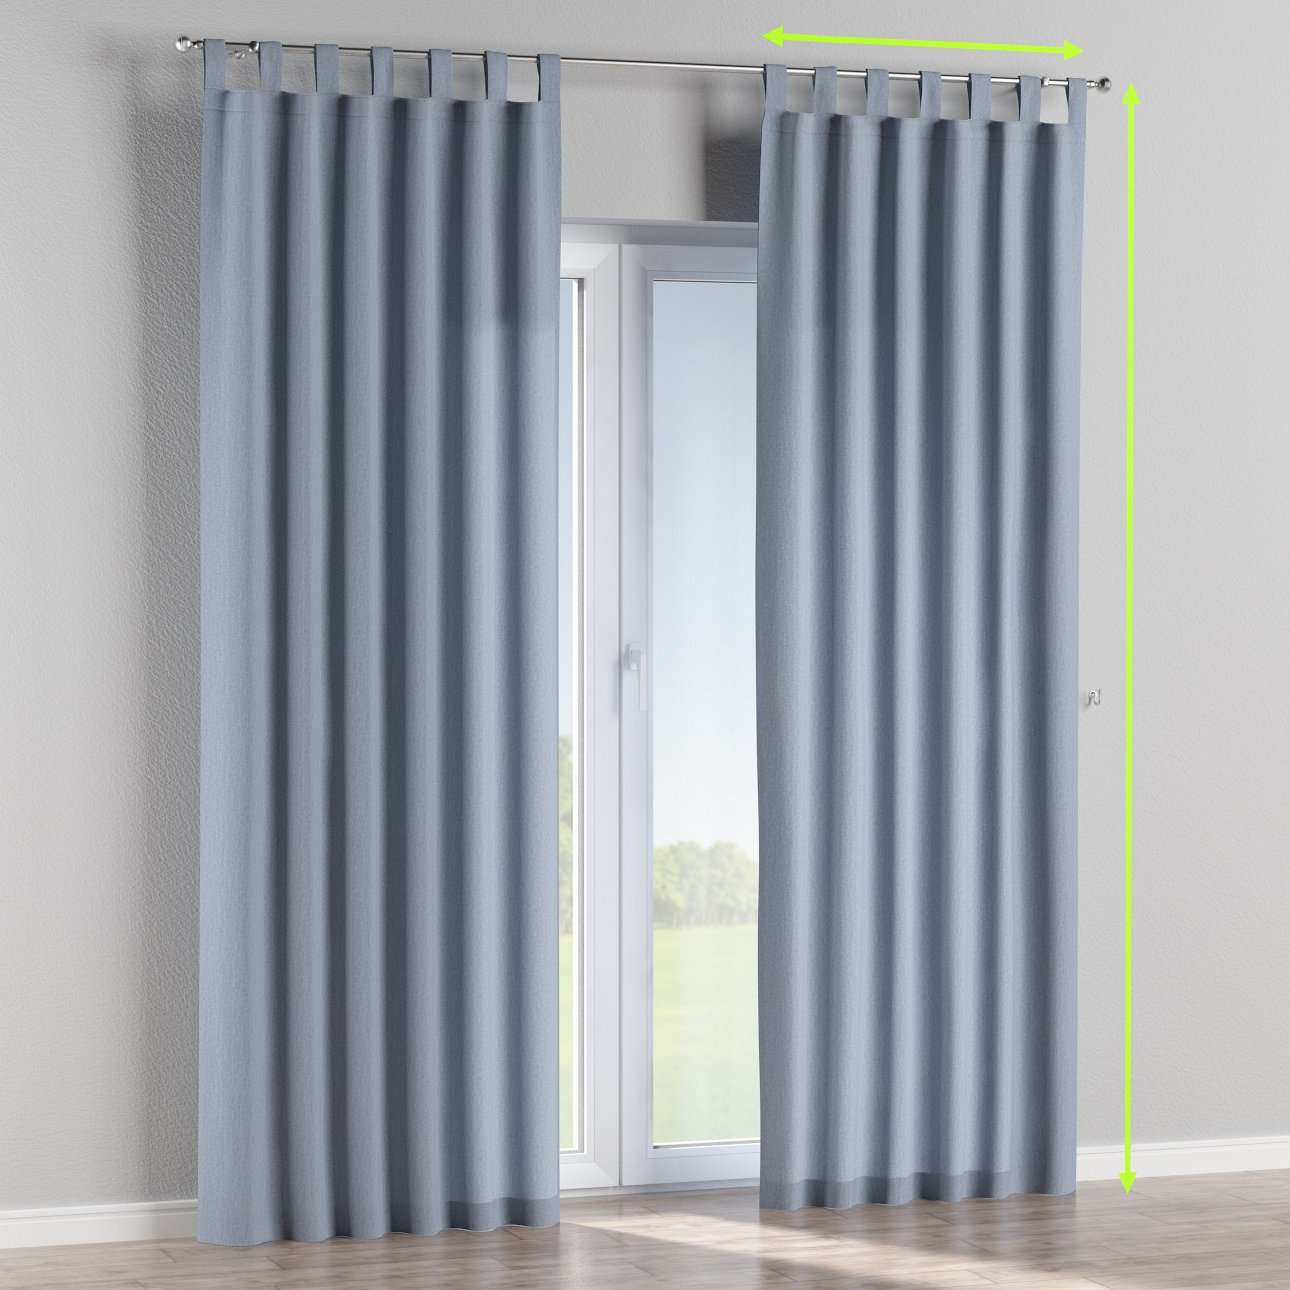 Tab top curtains in collection Chenille, fabric: 702-13